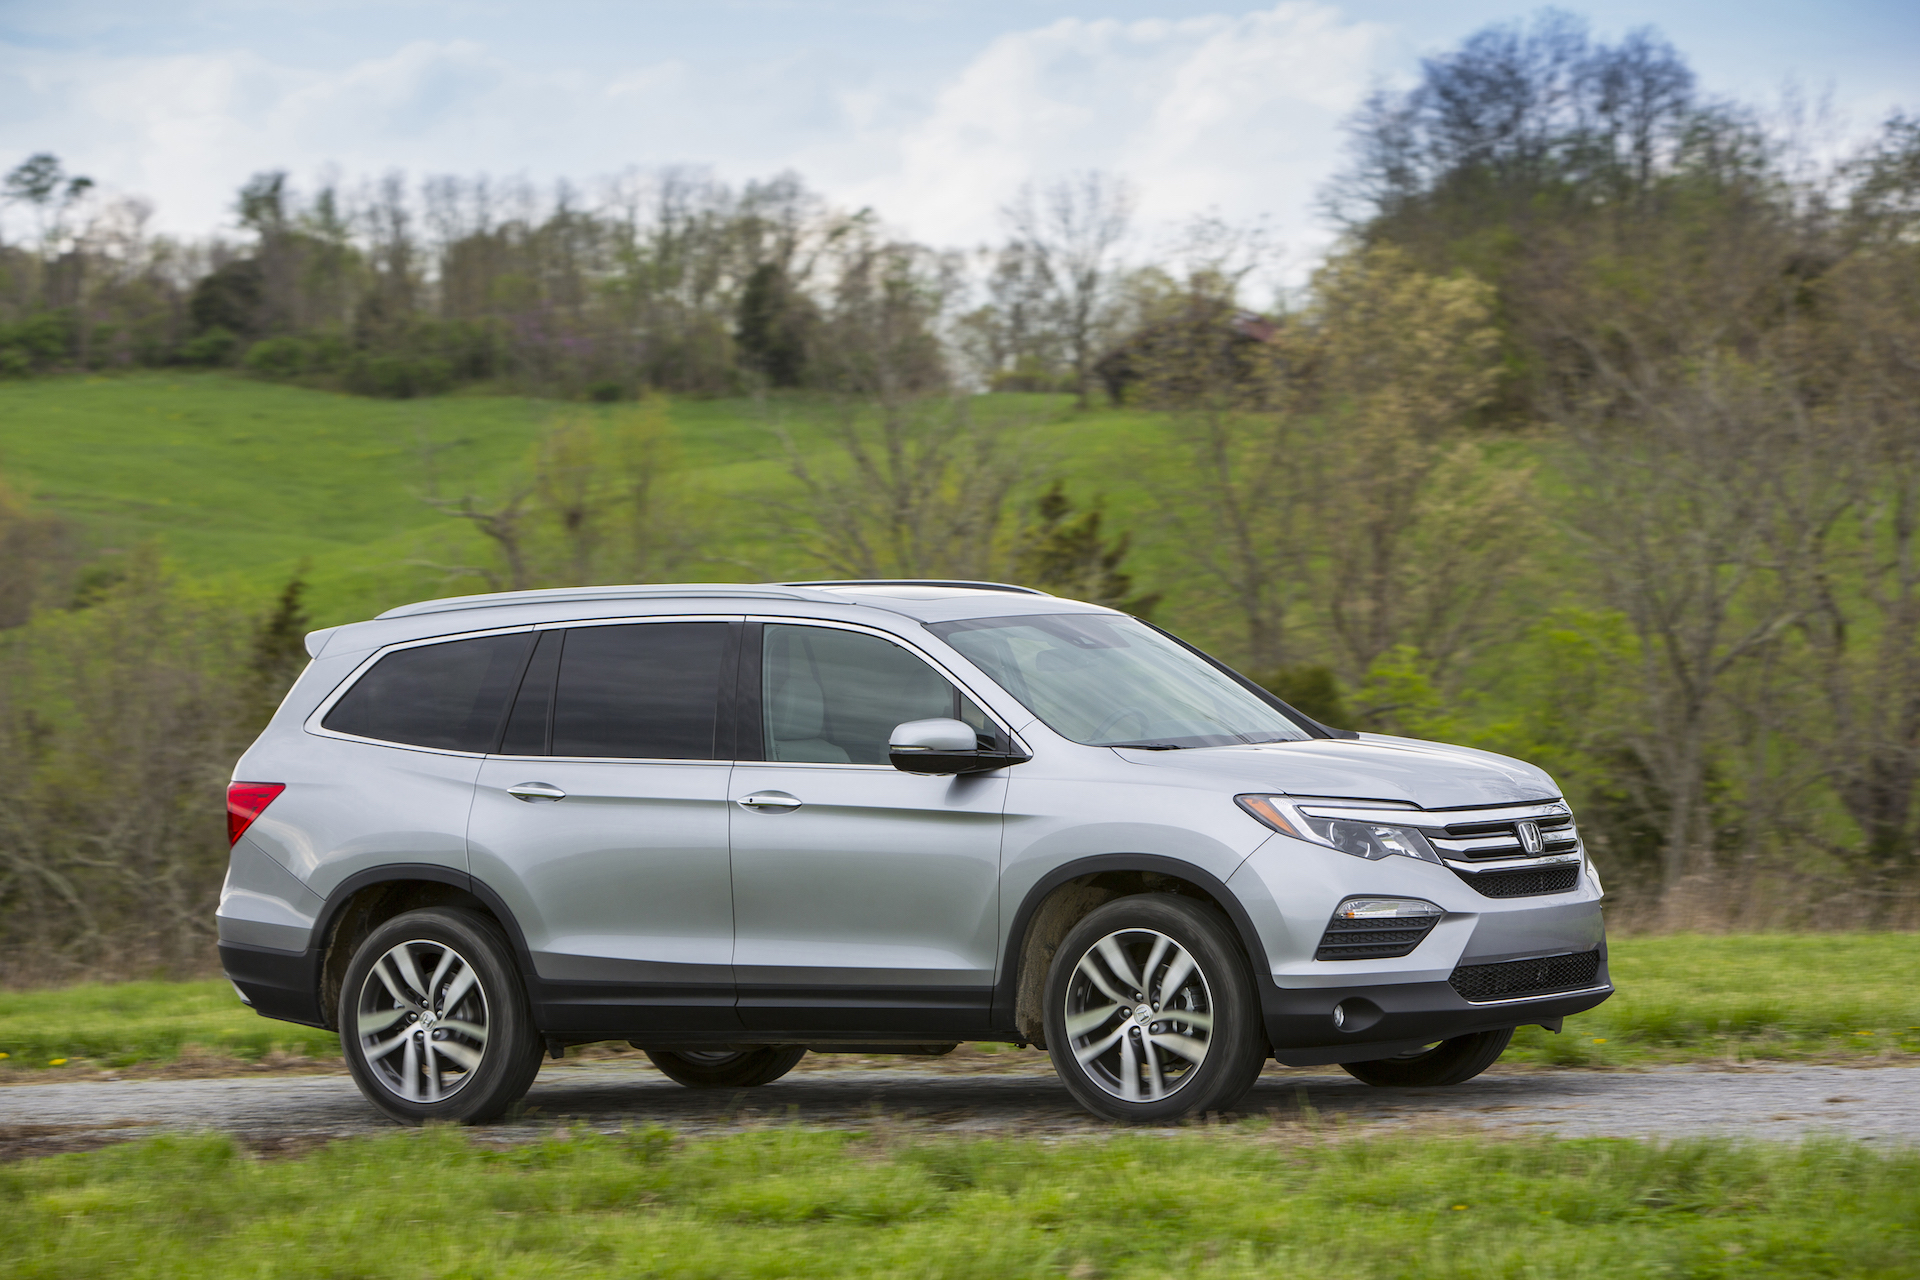 Apple carplay android auto added to 2017 honda pilot for Honda pilot images